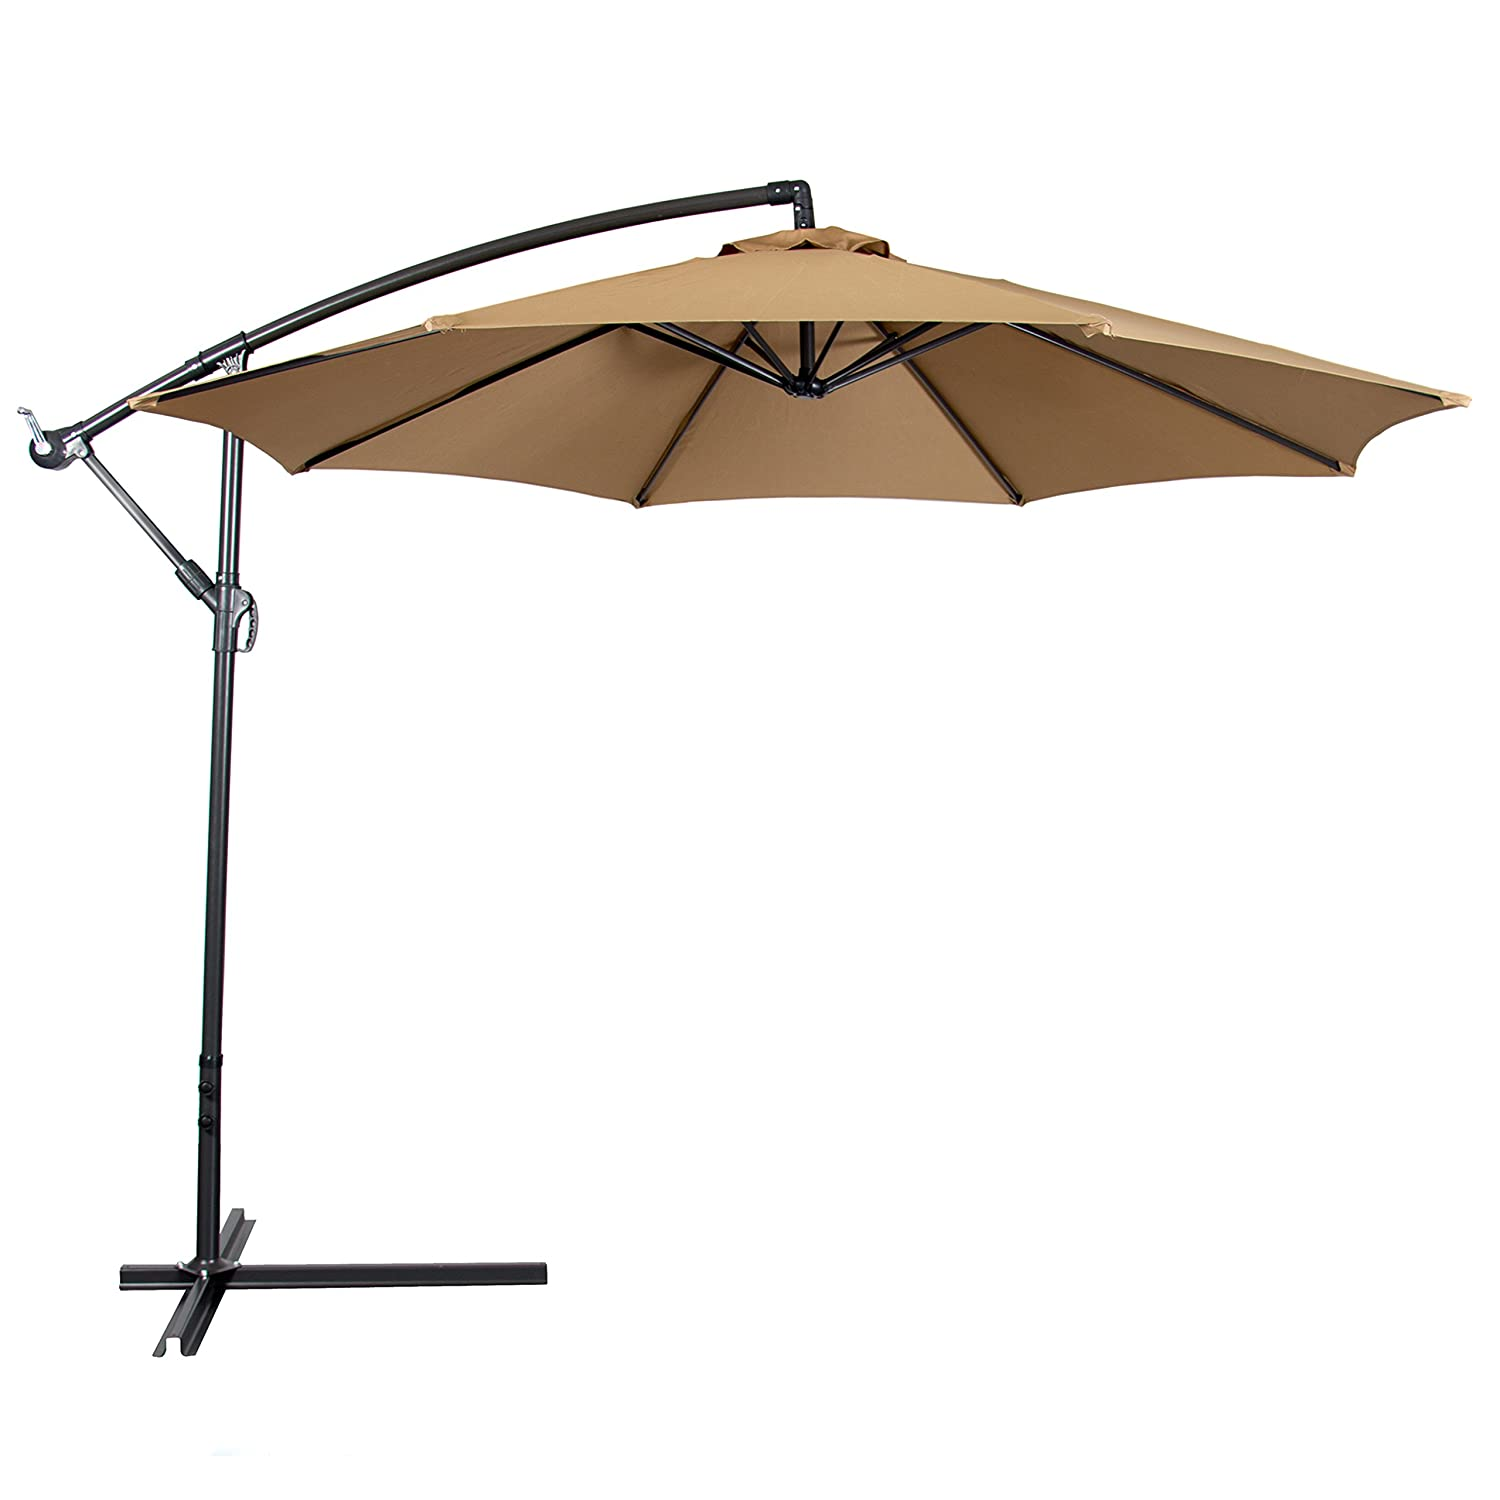 Exceptional Amazon.com : Best Choice Products Patio Umbrella Offset 10u0027 Hanging Umbrella  Outdoor Market Umbrella Tan New : Garden U0026 Outdoor